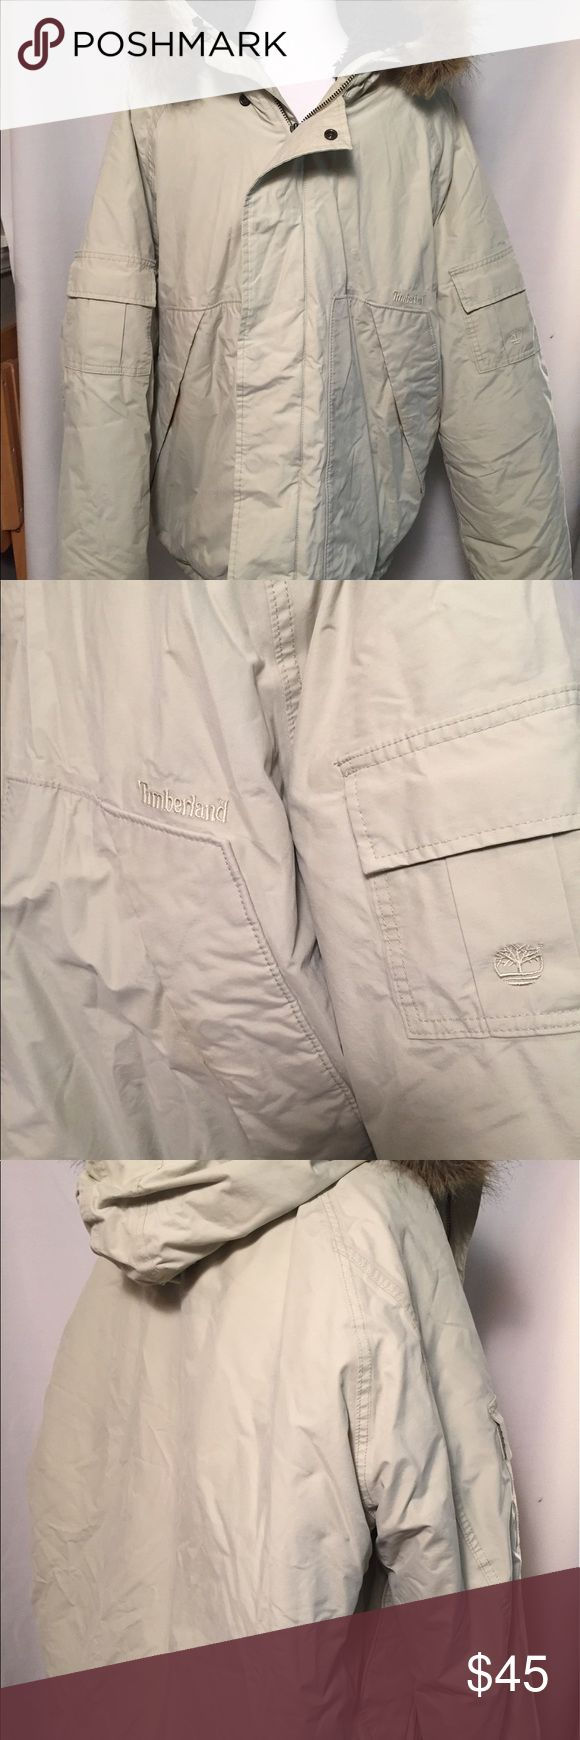 Timberland Men's Jacket, Size large Men's Timberland jacket. Size large. Cotton and polyester shell. Polyester fill. Machine washable. Fur trim on hood zips off and on. This jacket is in good condition with no rips, tears stains or holes. 😀 Timberland Jackets & Coats